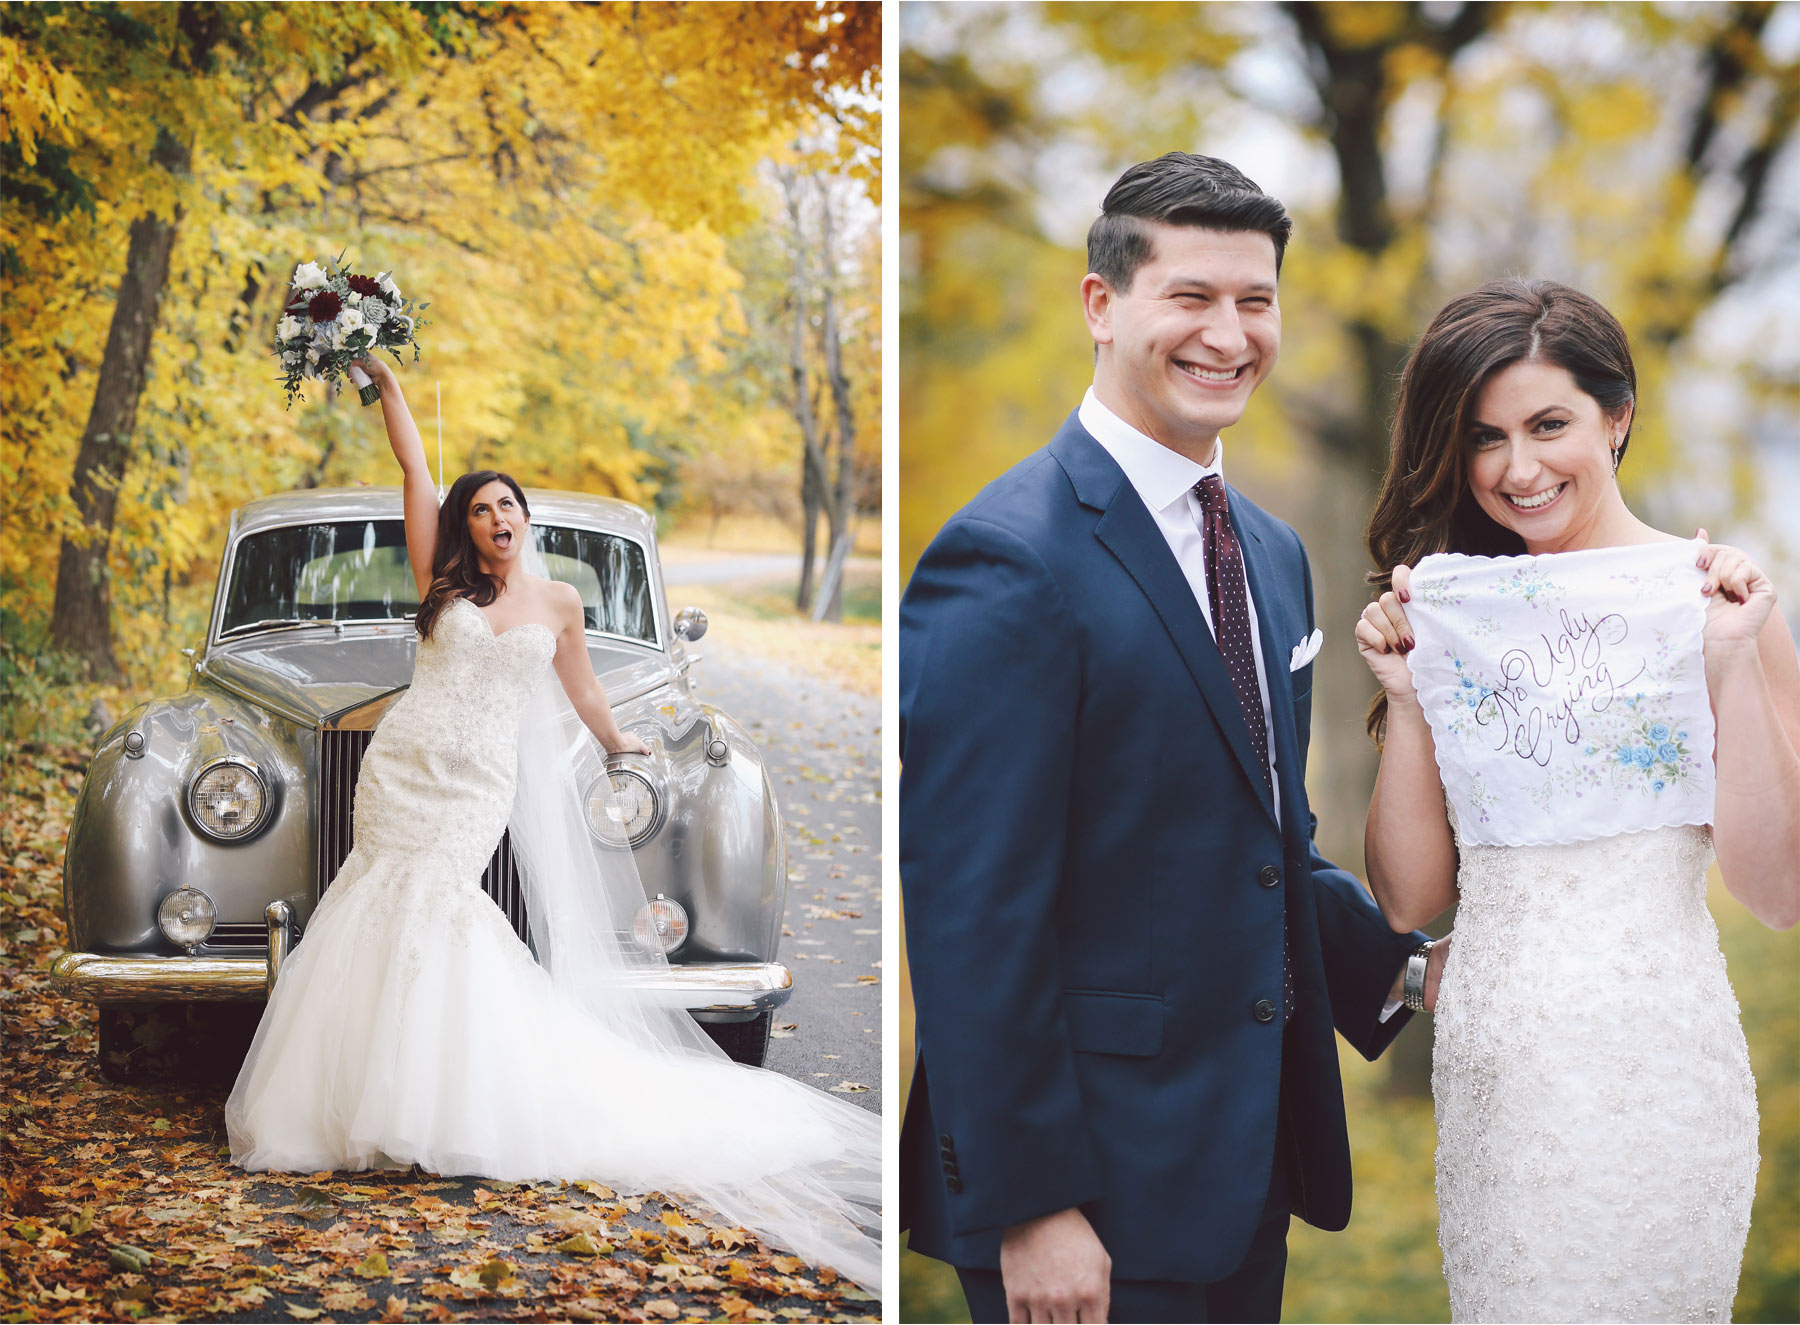 08-Minneapolis-Minnesota-Wedding-Photography-by-Vick-Photography-Classic-Car-Autumn-Fall-Colors-Bride-and-Groom-Jana-and-Matt.jpg